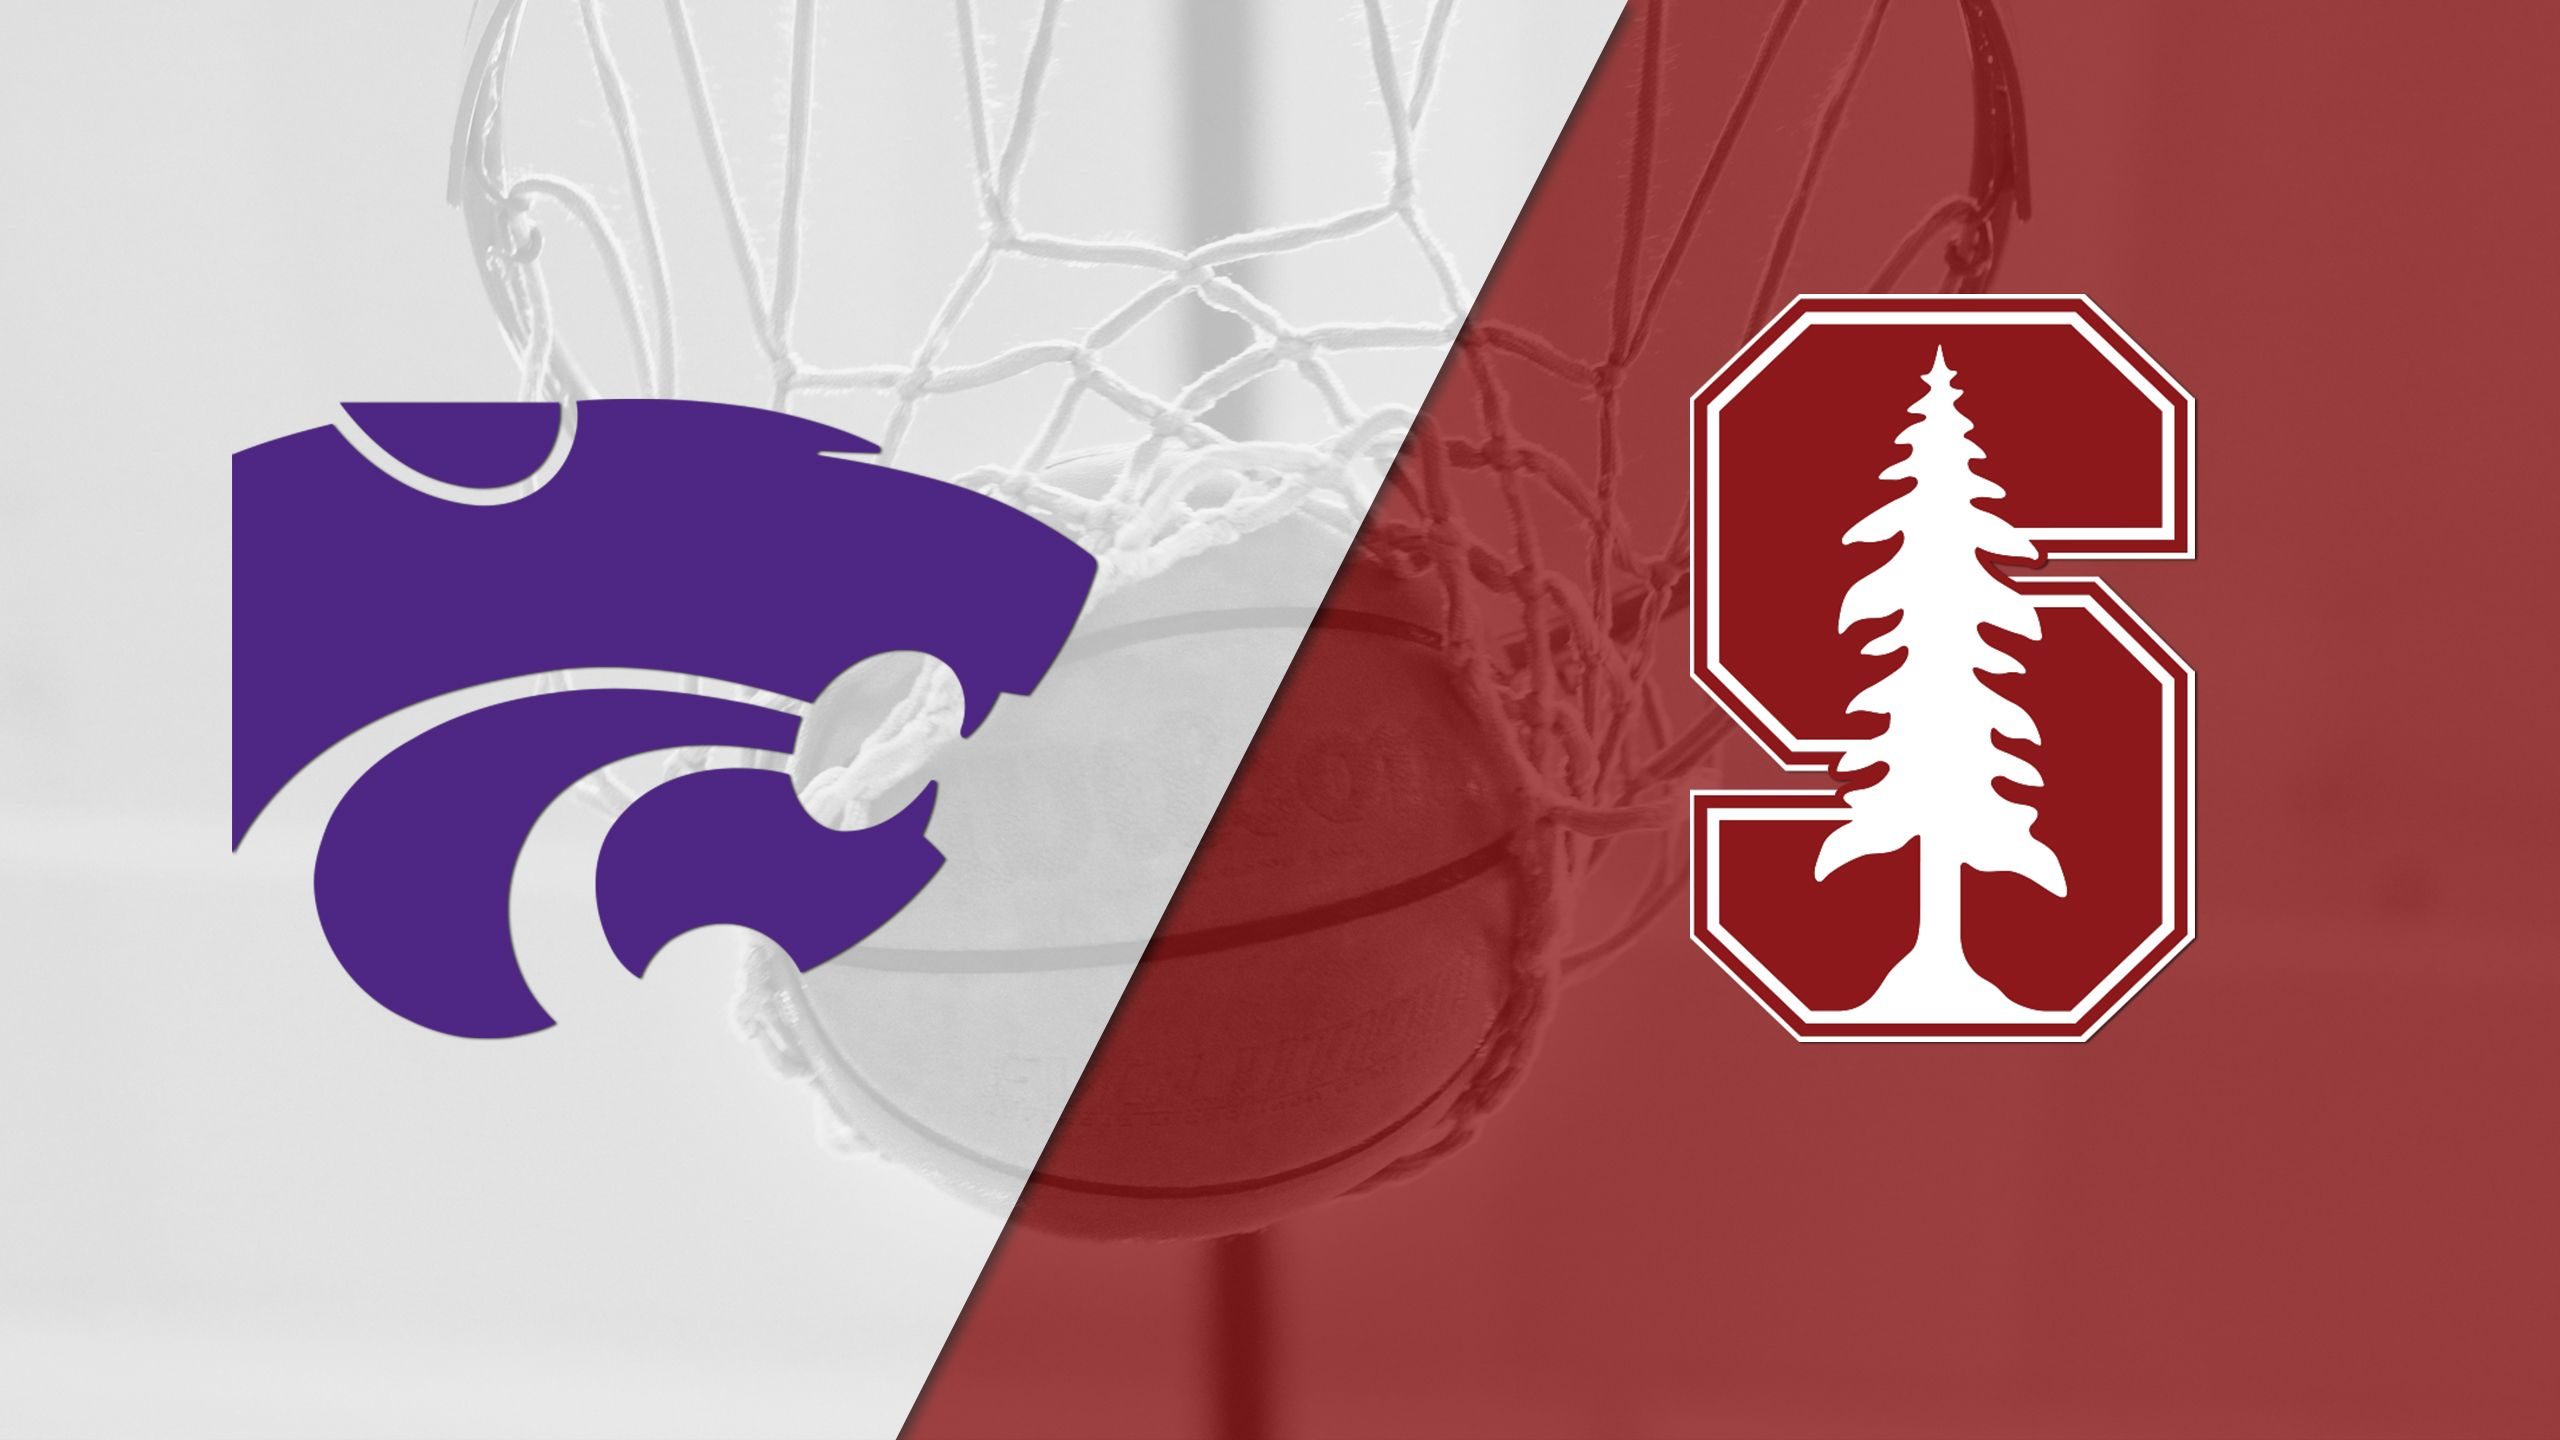 #7 Kansas State vs. #2 Stanford (Second Round) (NCAA Women's Basketball Championship)